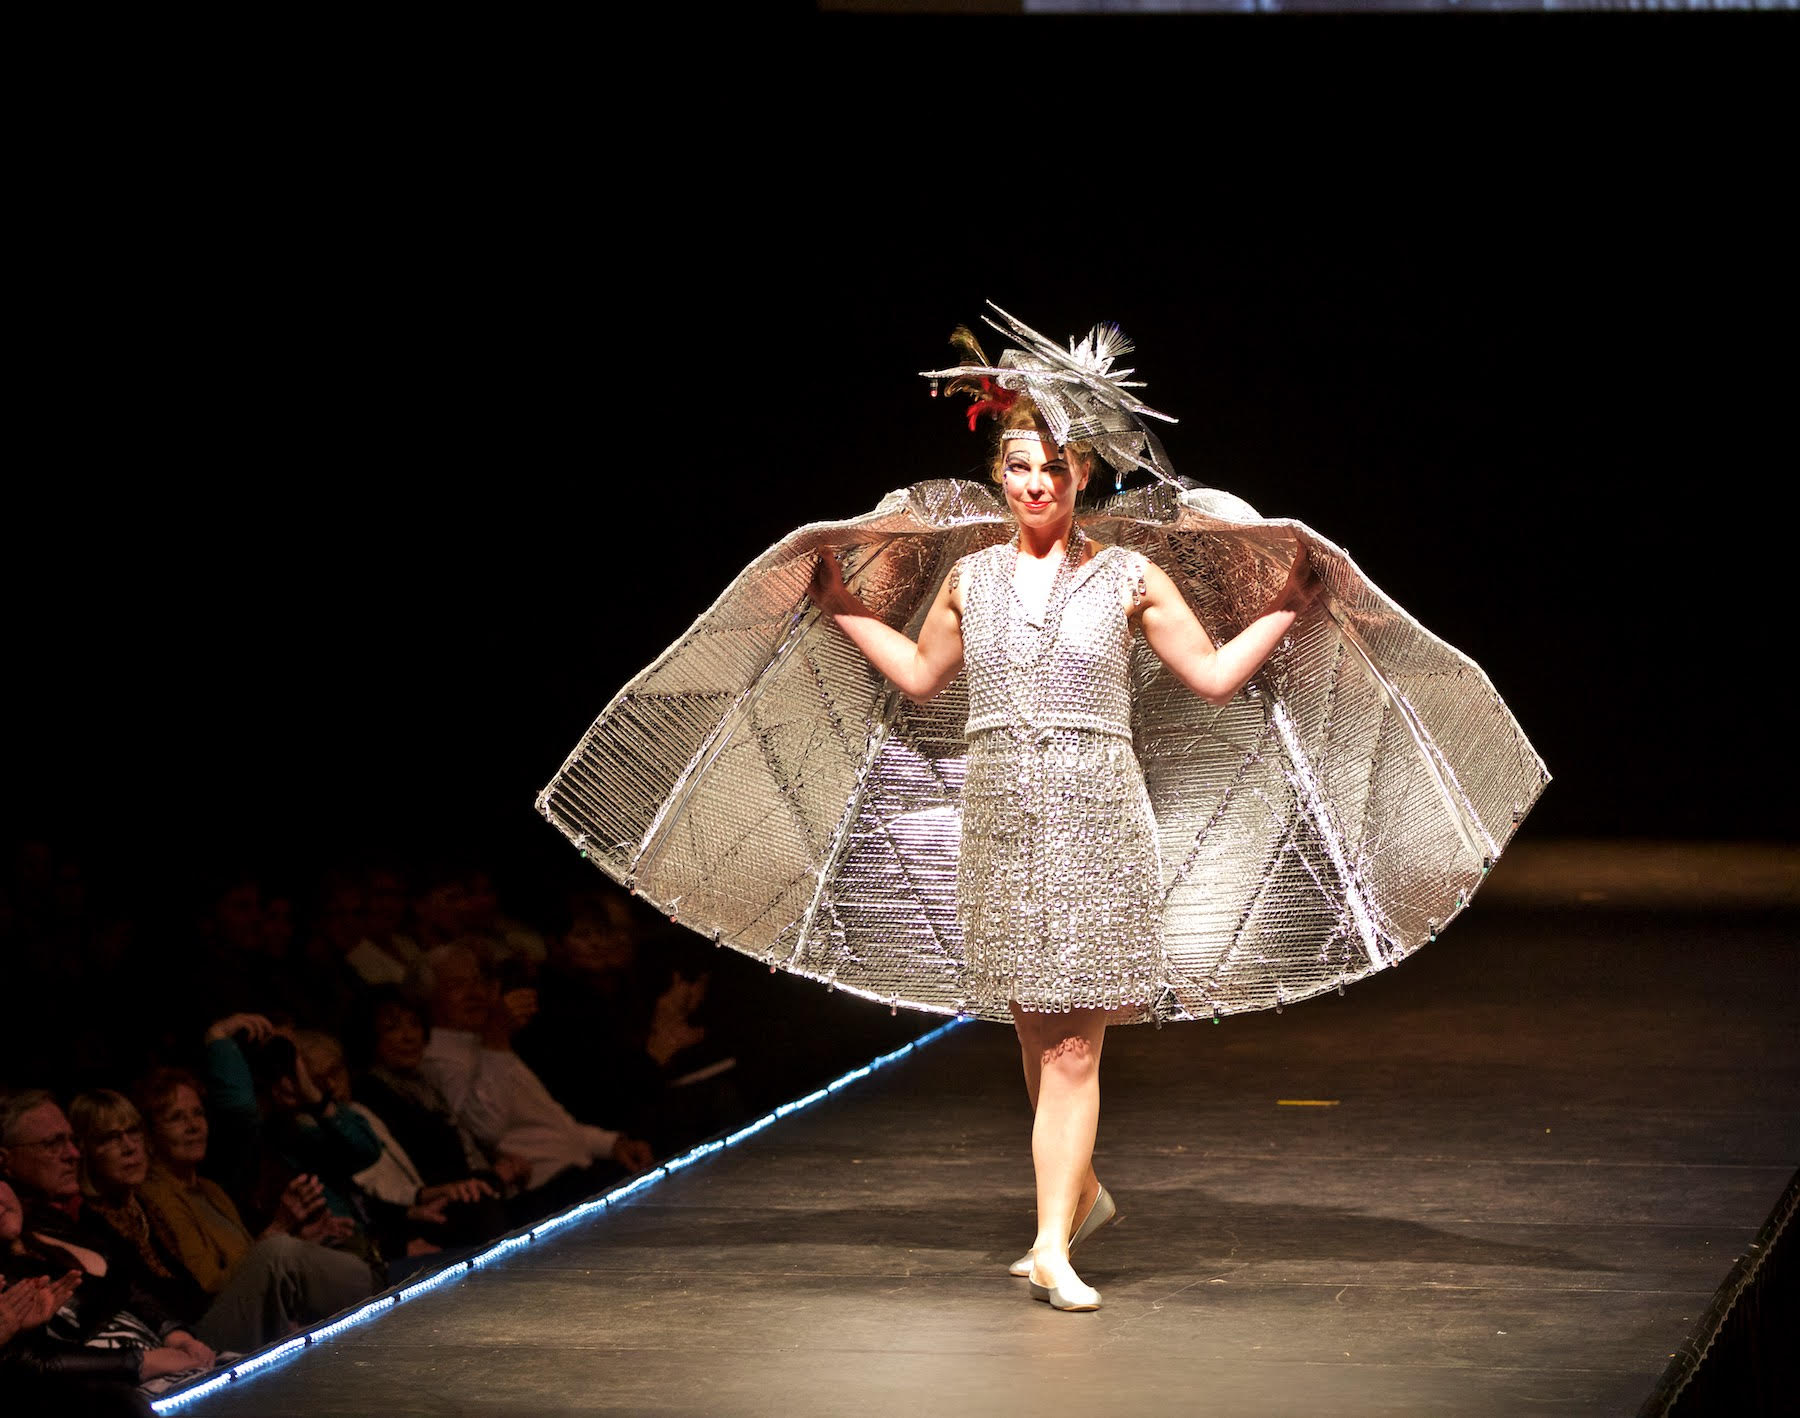 Fund for Women & Girls - In 2009, community women came together to discuss ways to empower women and girls in Jefferson County. The popular PT Wearable Art Show is the major fundraiser for the Fund for Women & Girls.2018 Community Report